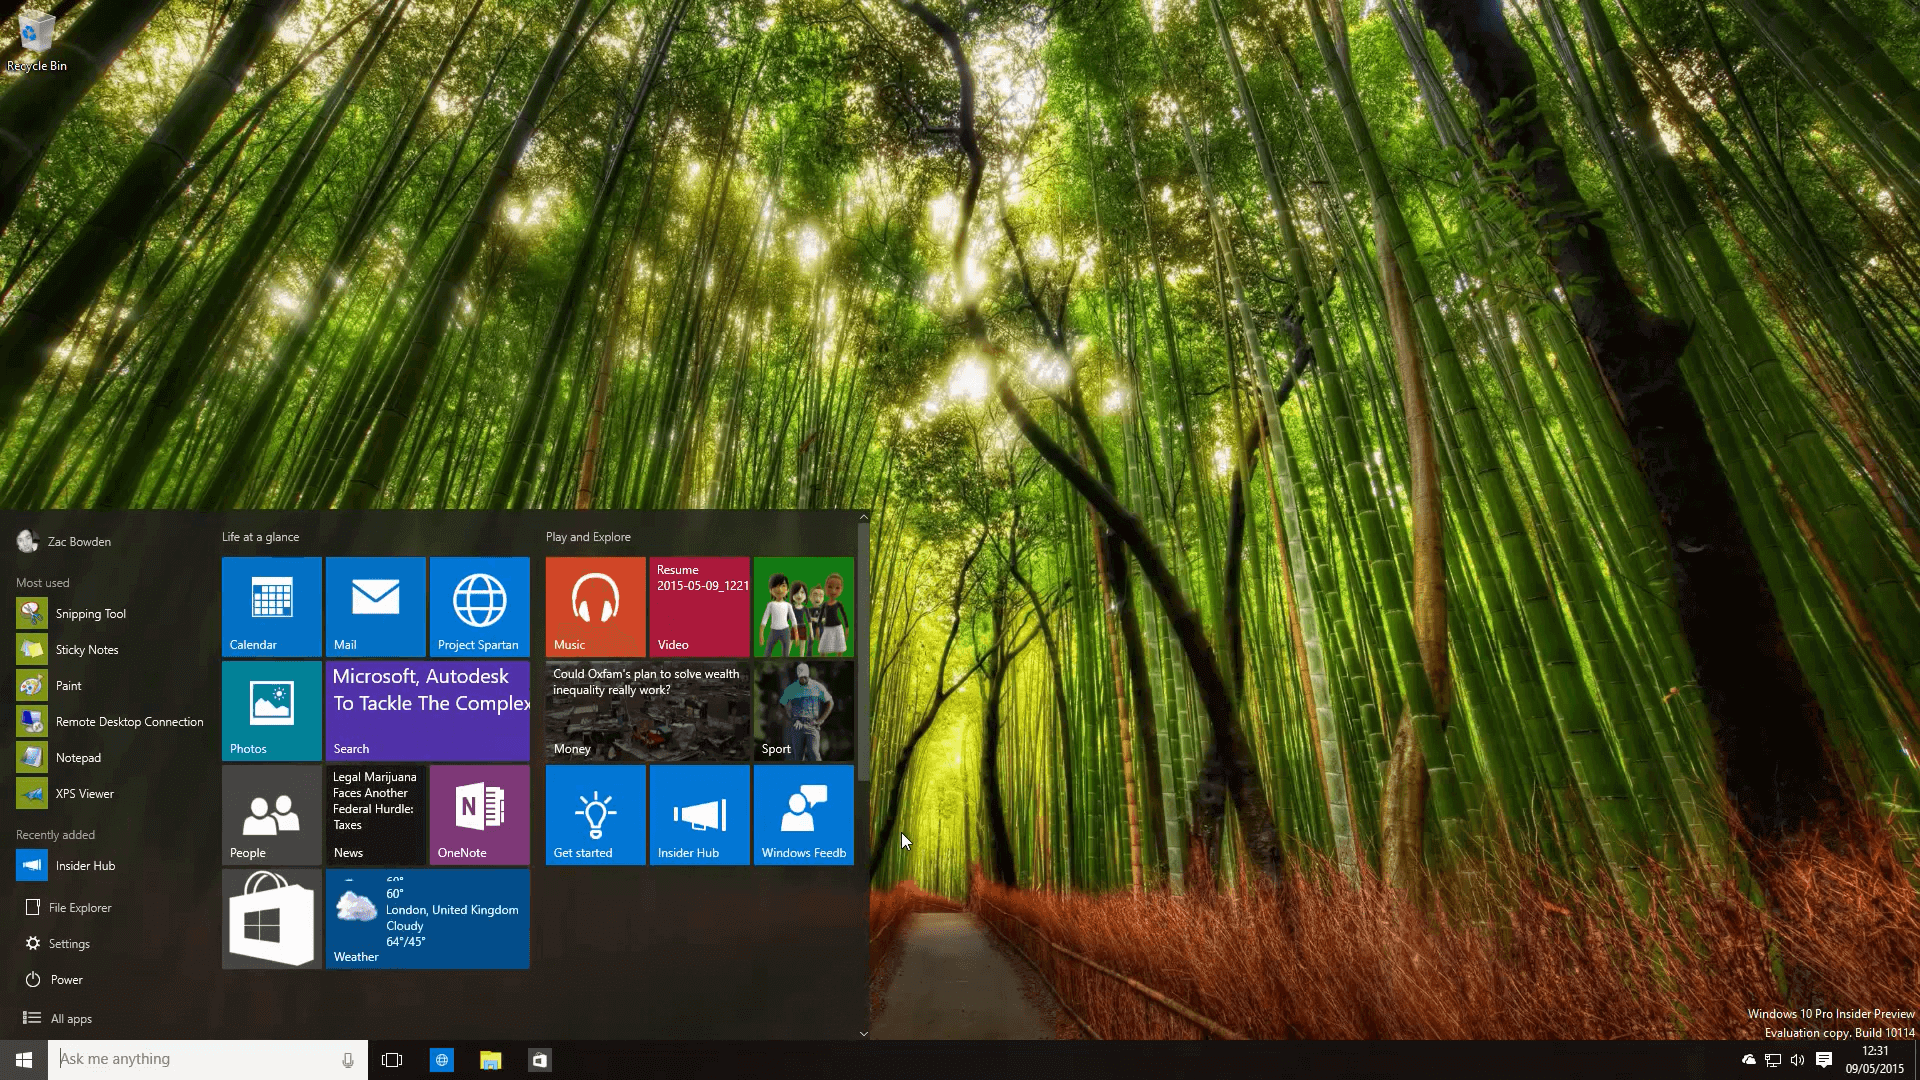 Windows10 Insider Preview - Build 10114